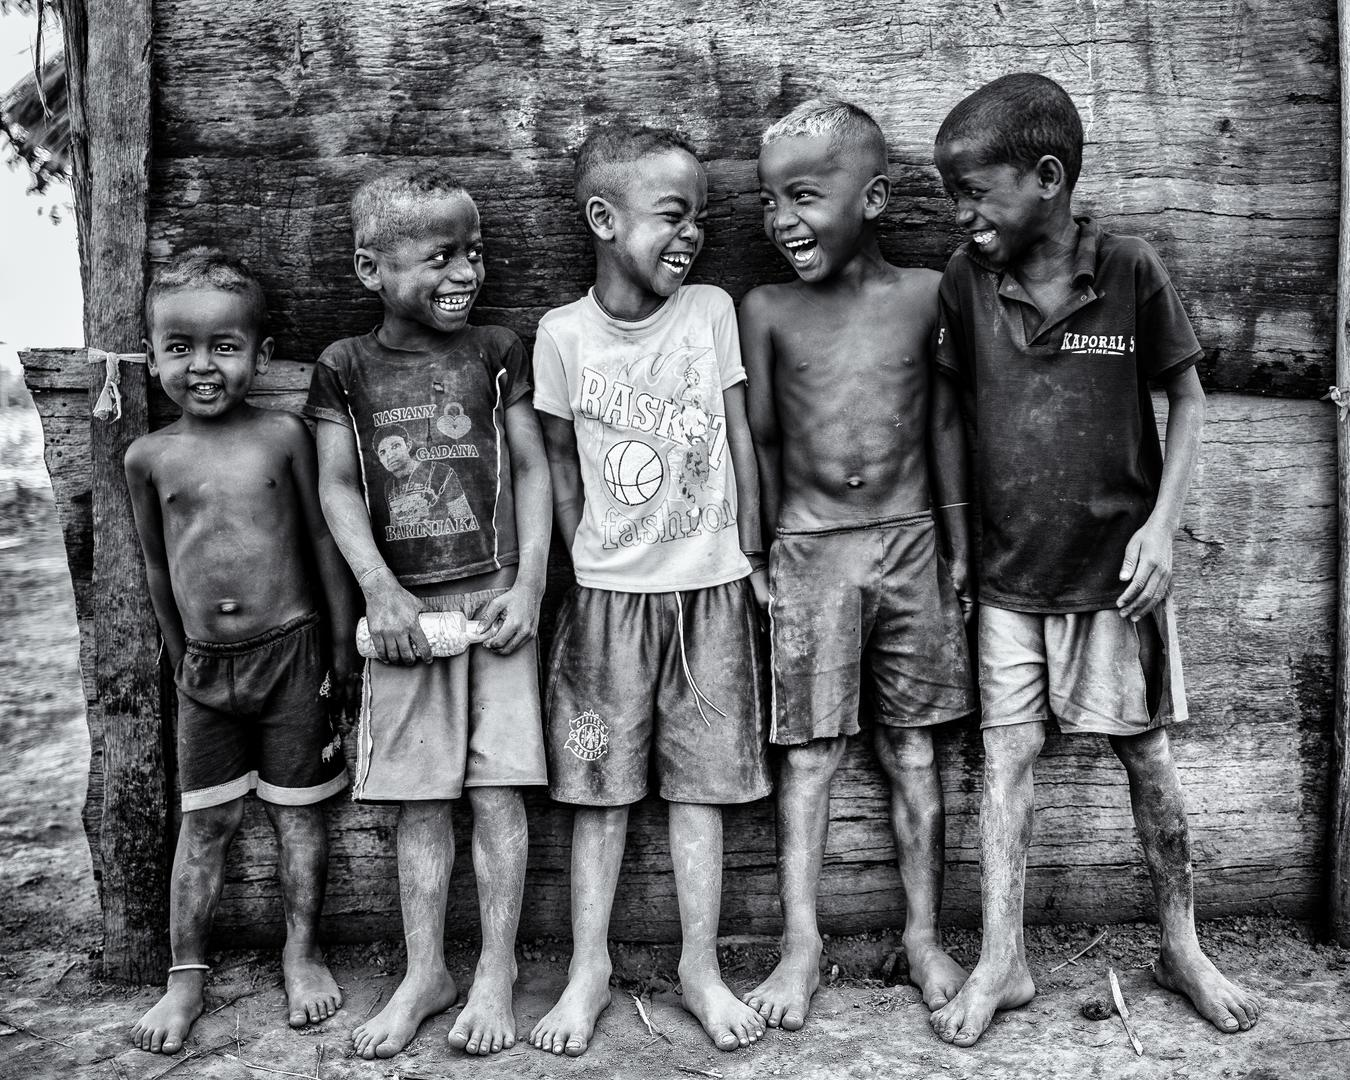 Smiling Children, © Marco Tagliarino, 2nd place, Digital Camera Photographer of the Year